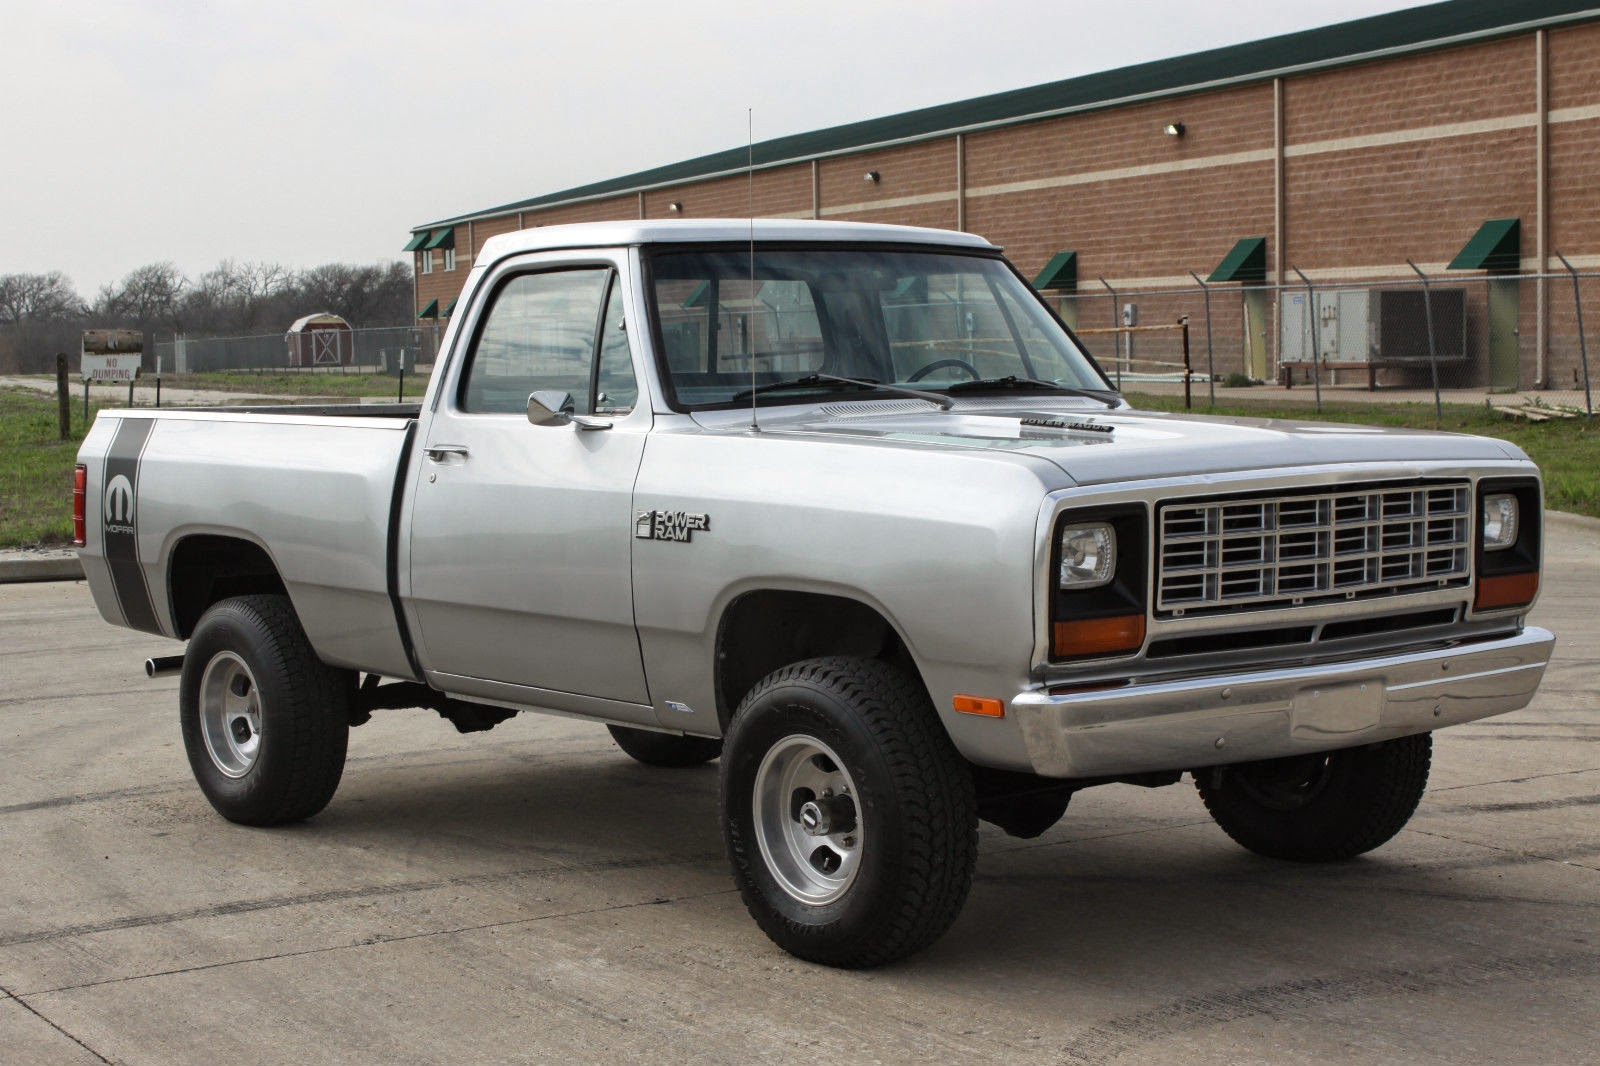 1982 dodge power ram royal se w150 pickup truck